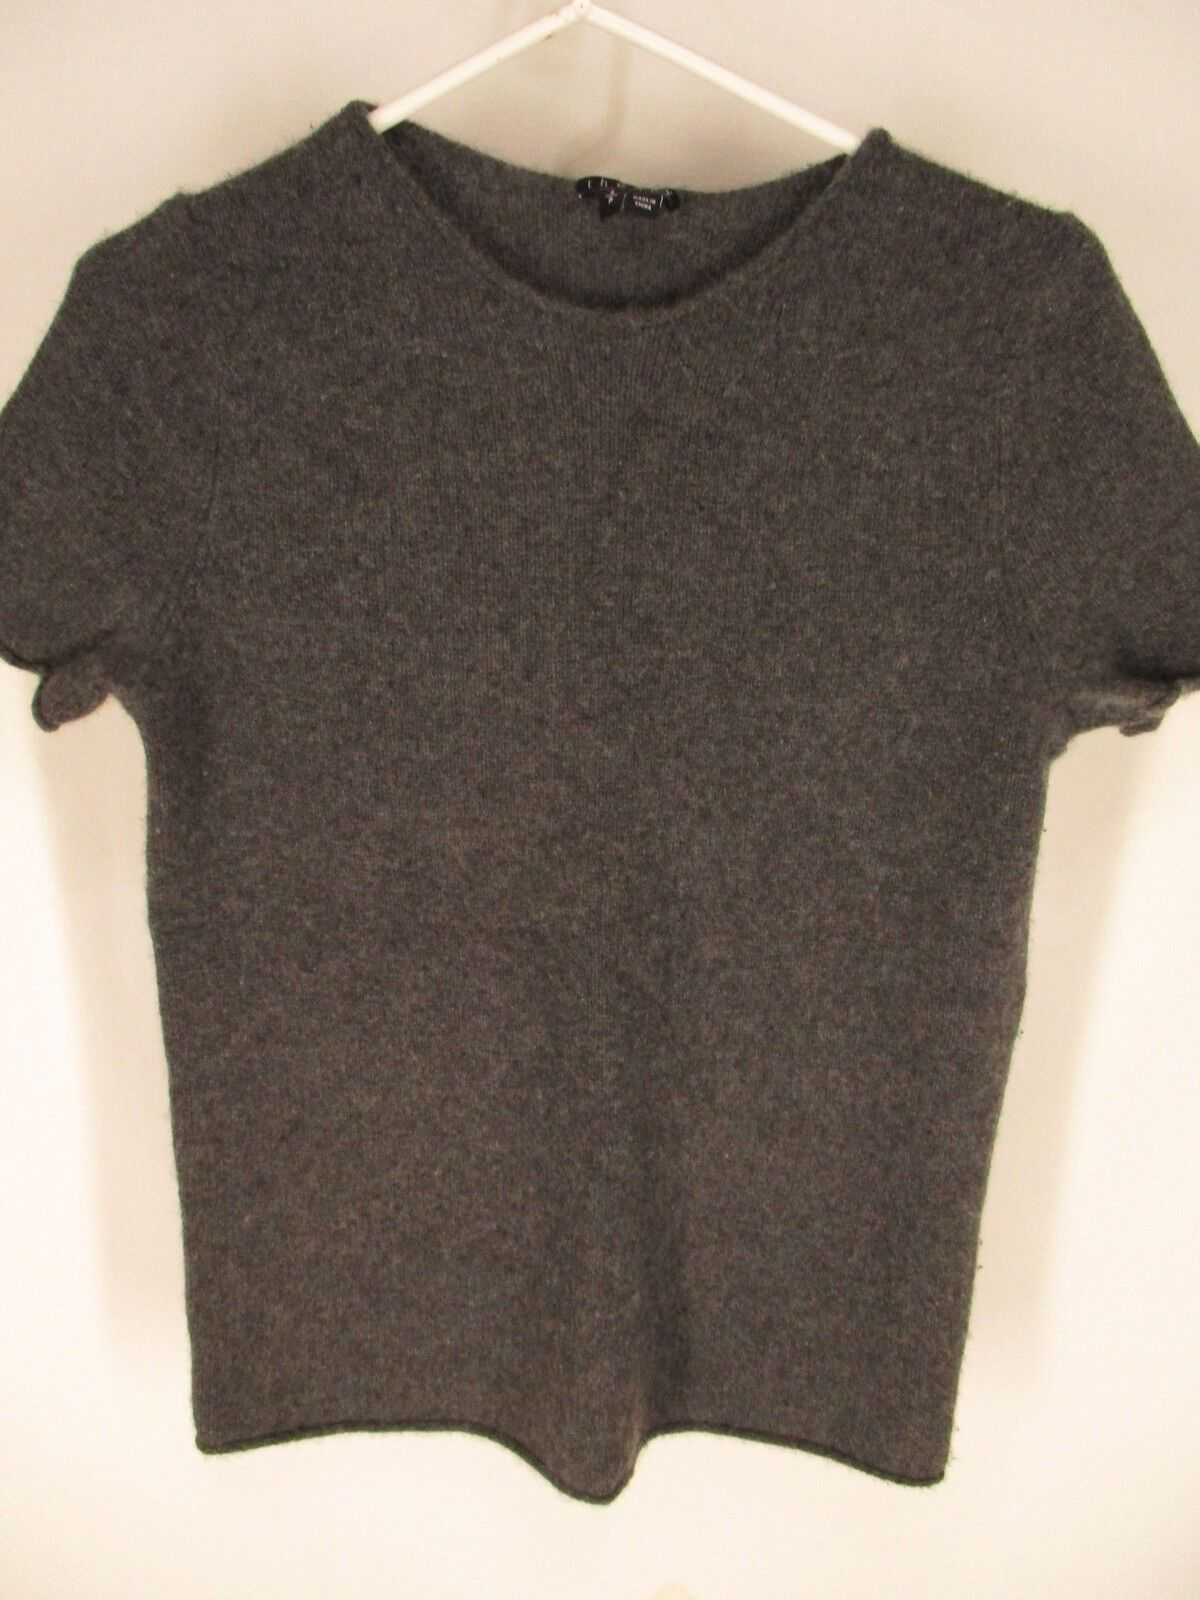 Theory daMänner Charcoal Cashmere Sweater S